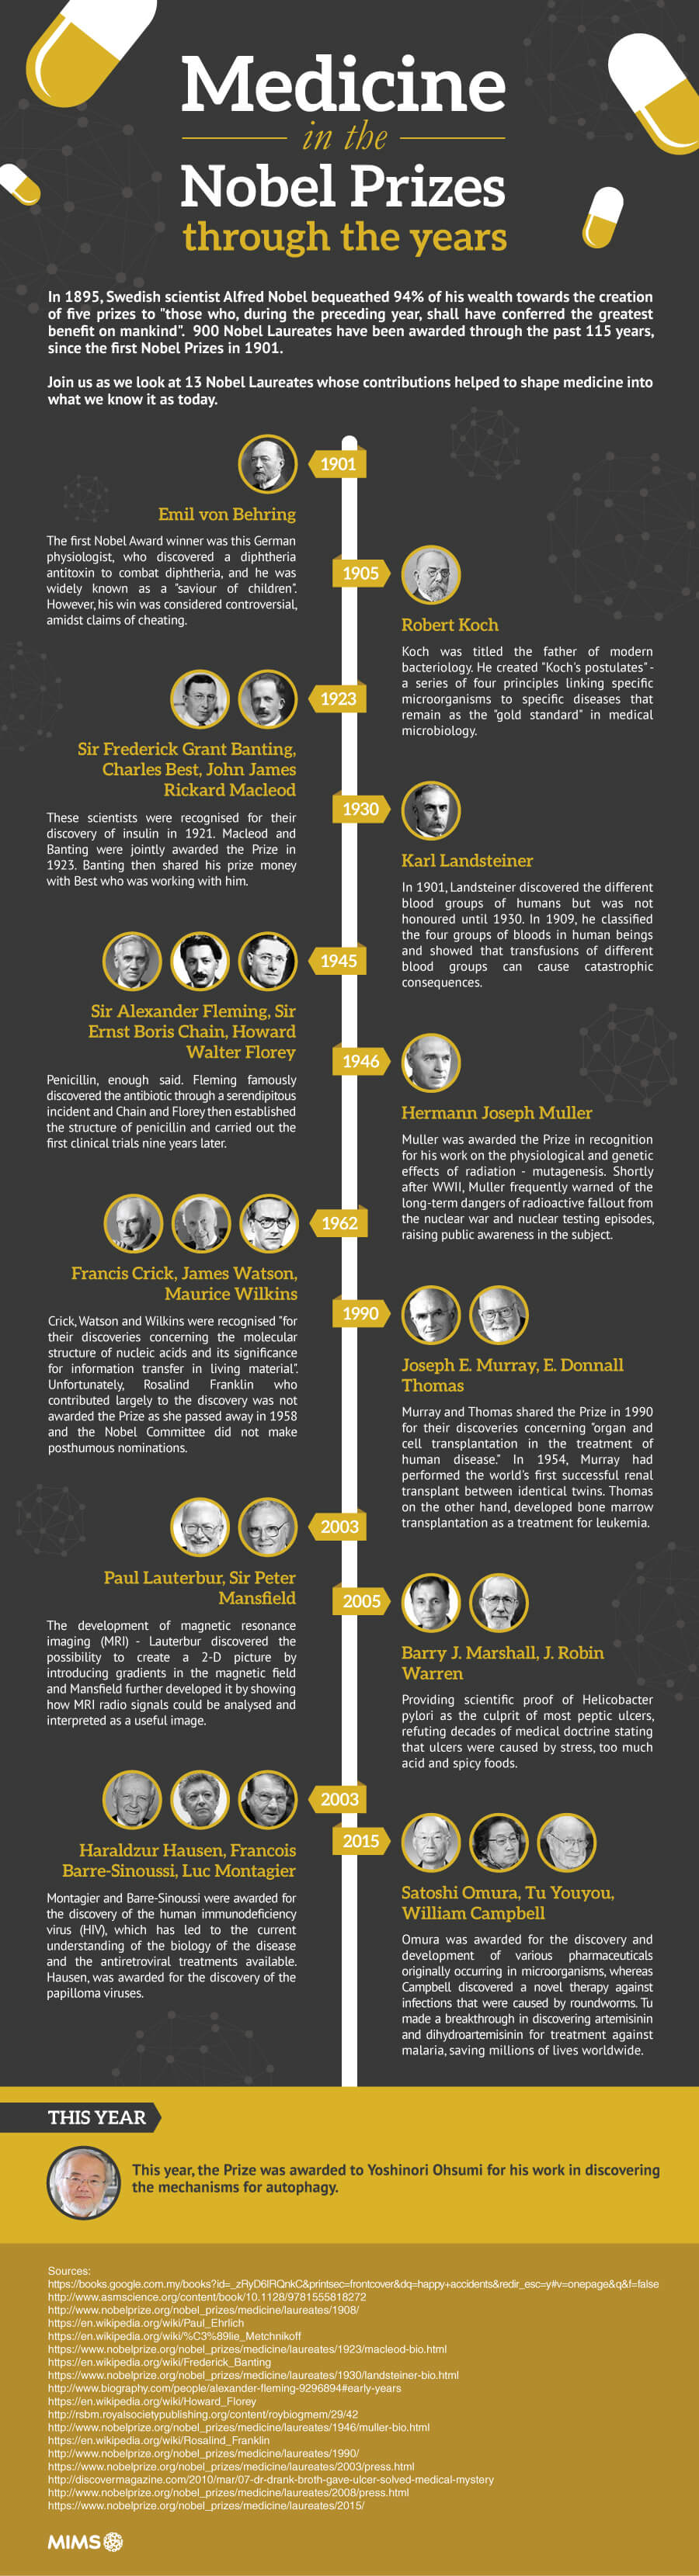 Medicine_in_the_Nobel_Prizes_through_the_years-infographic-plaza